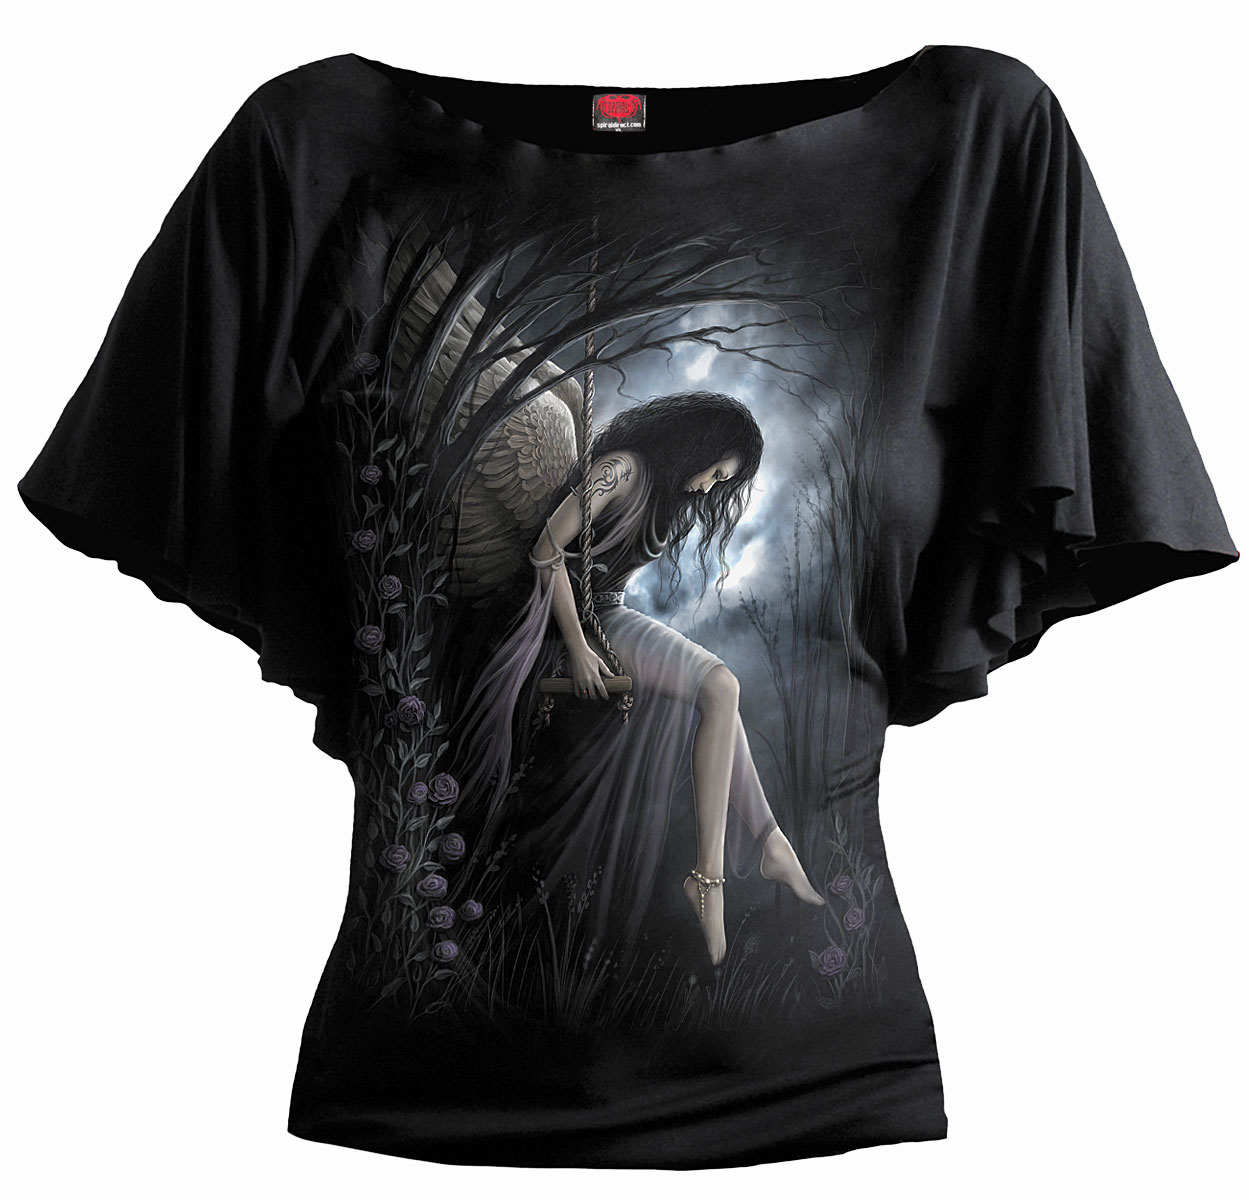 SPIRAL Angel Lament Girlie Latin Shirt schwarz T047F719